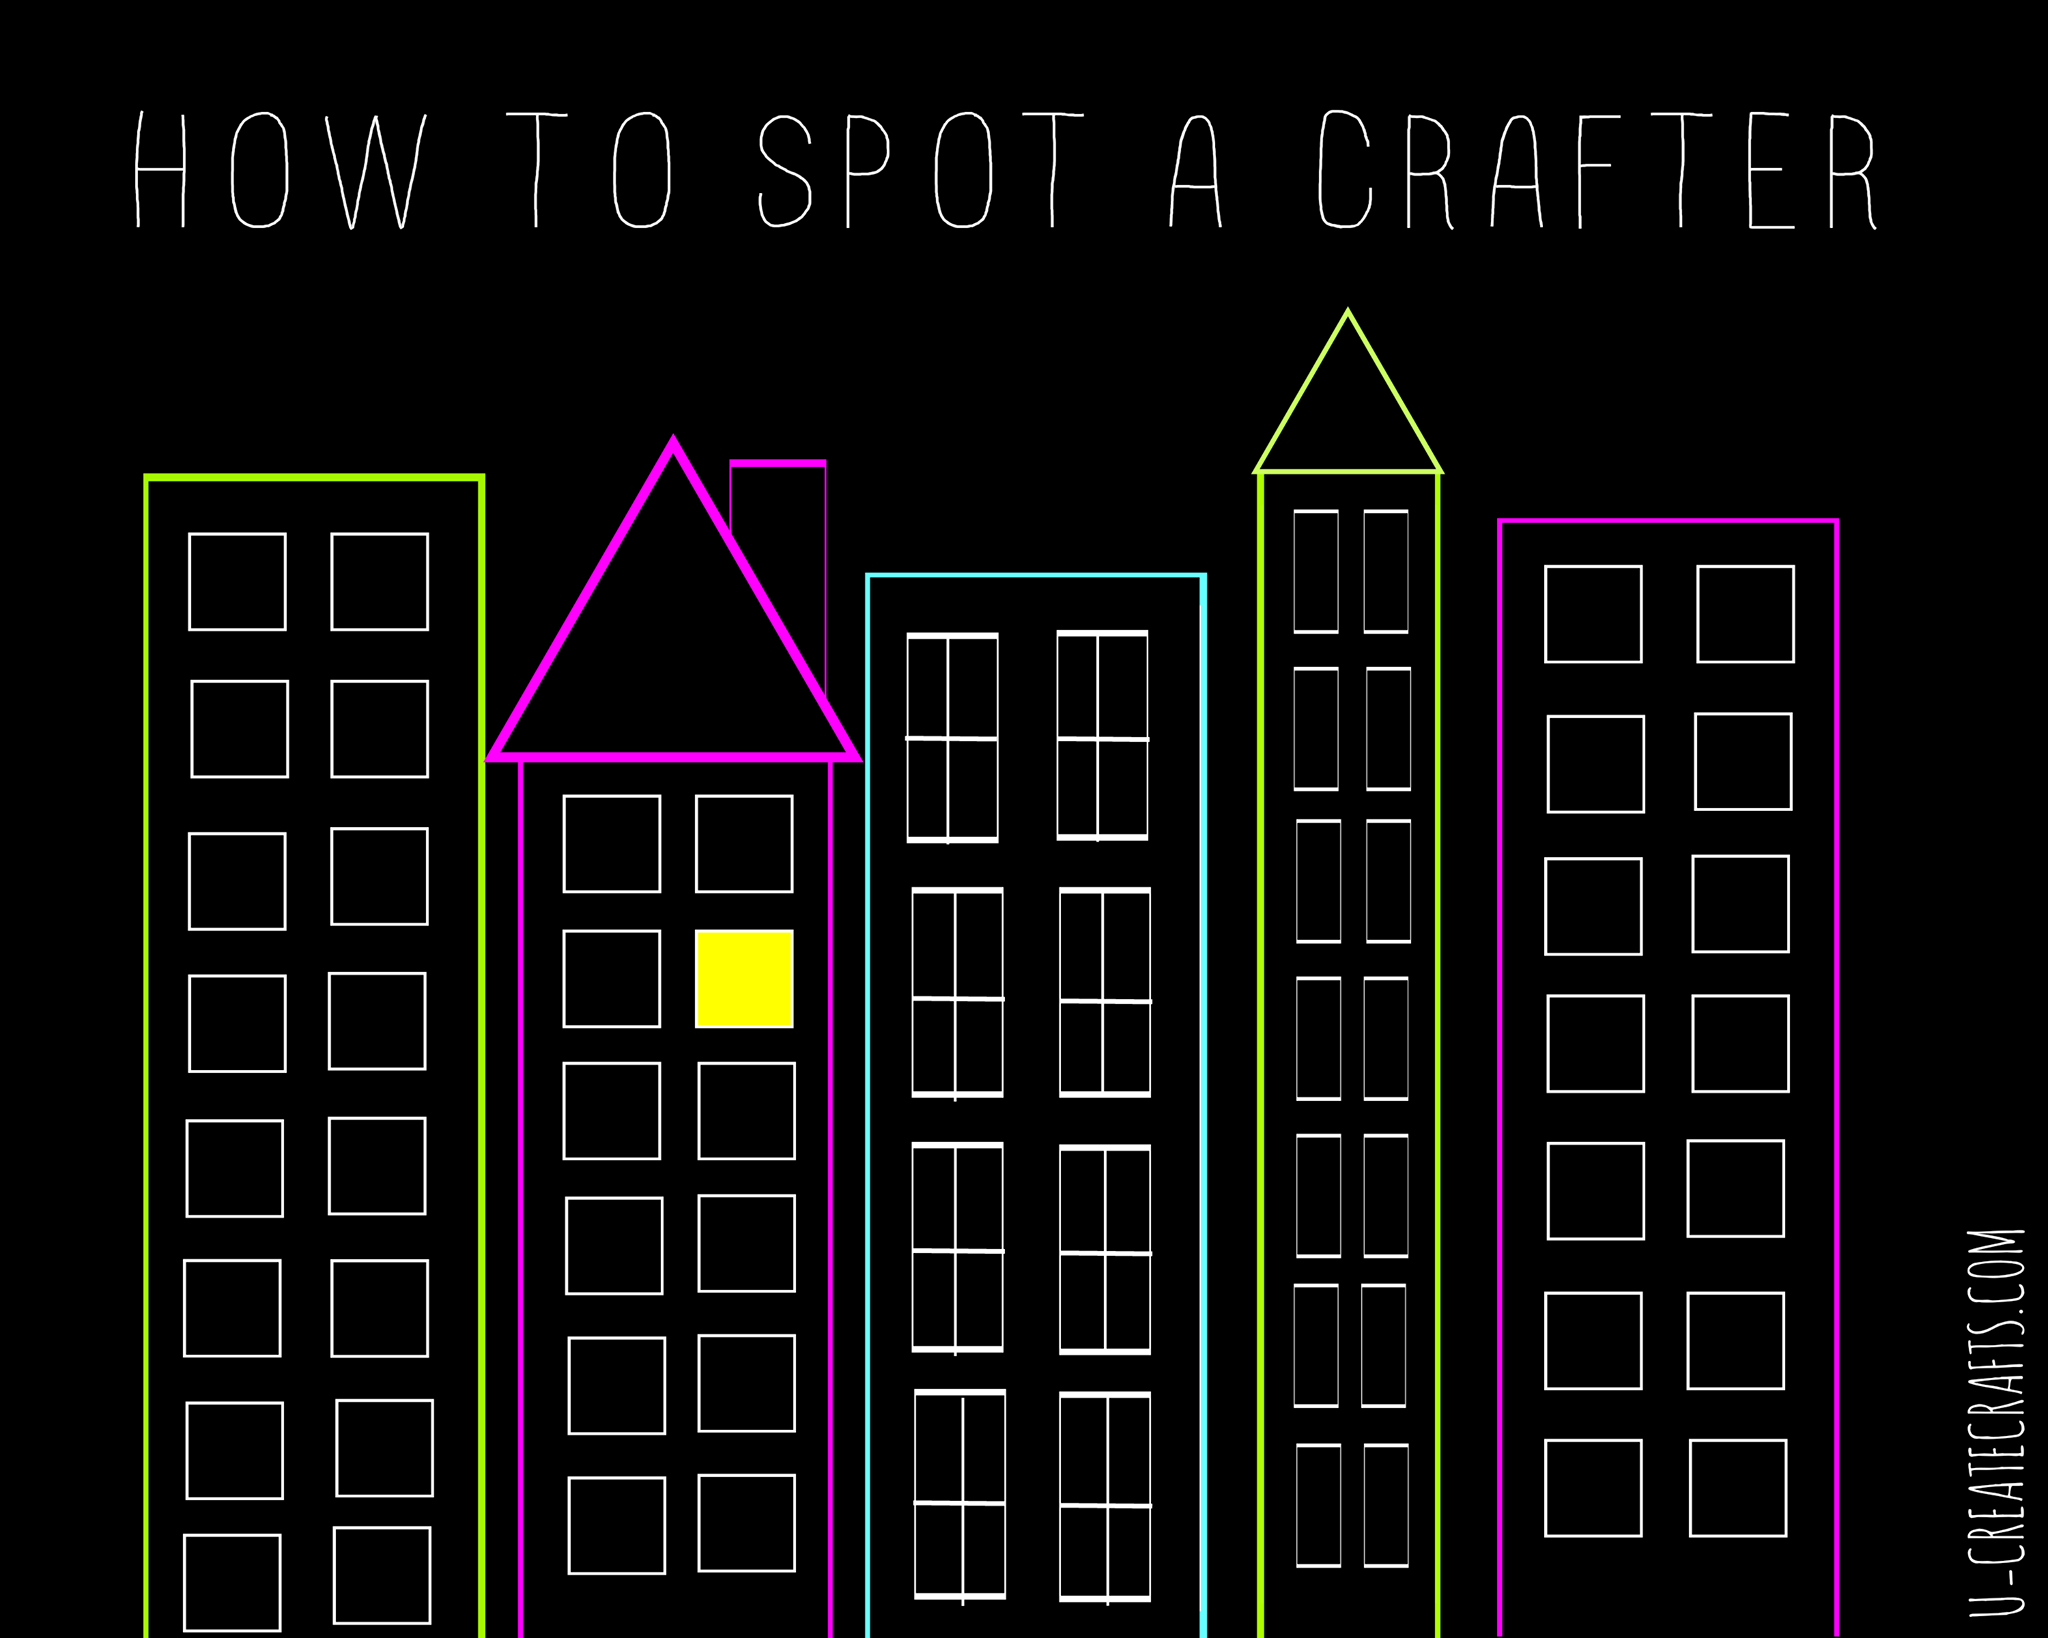 How To Spot a Crafter